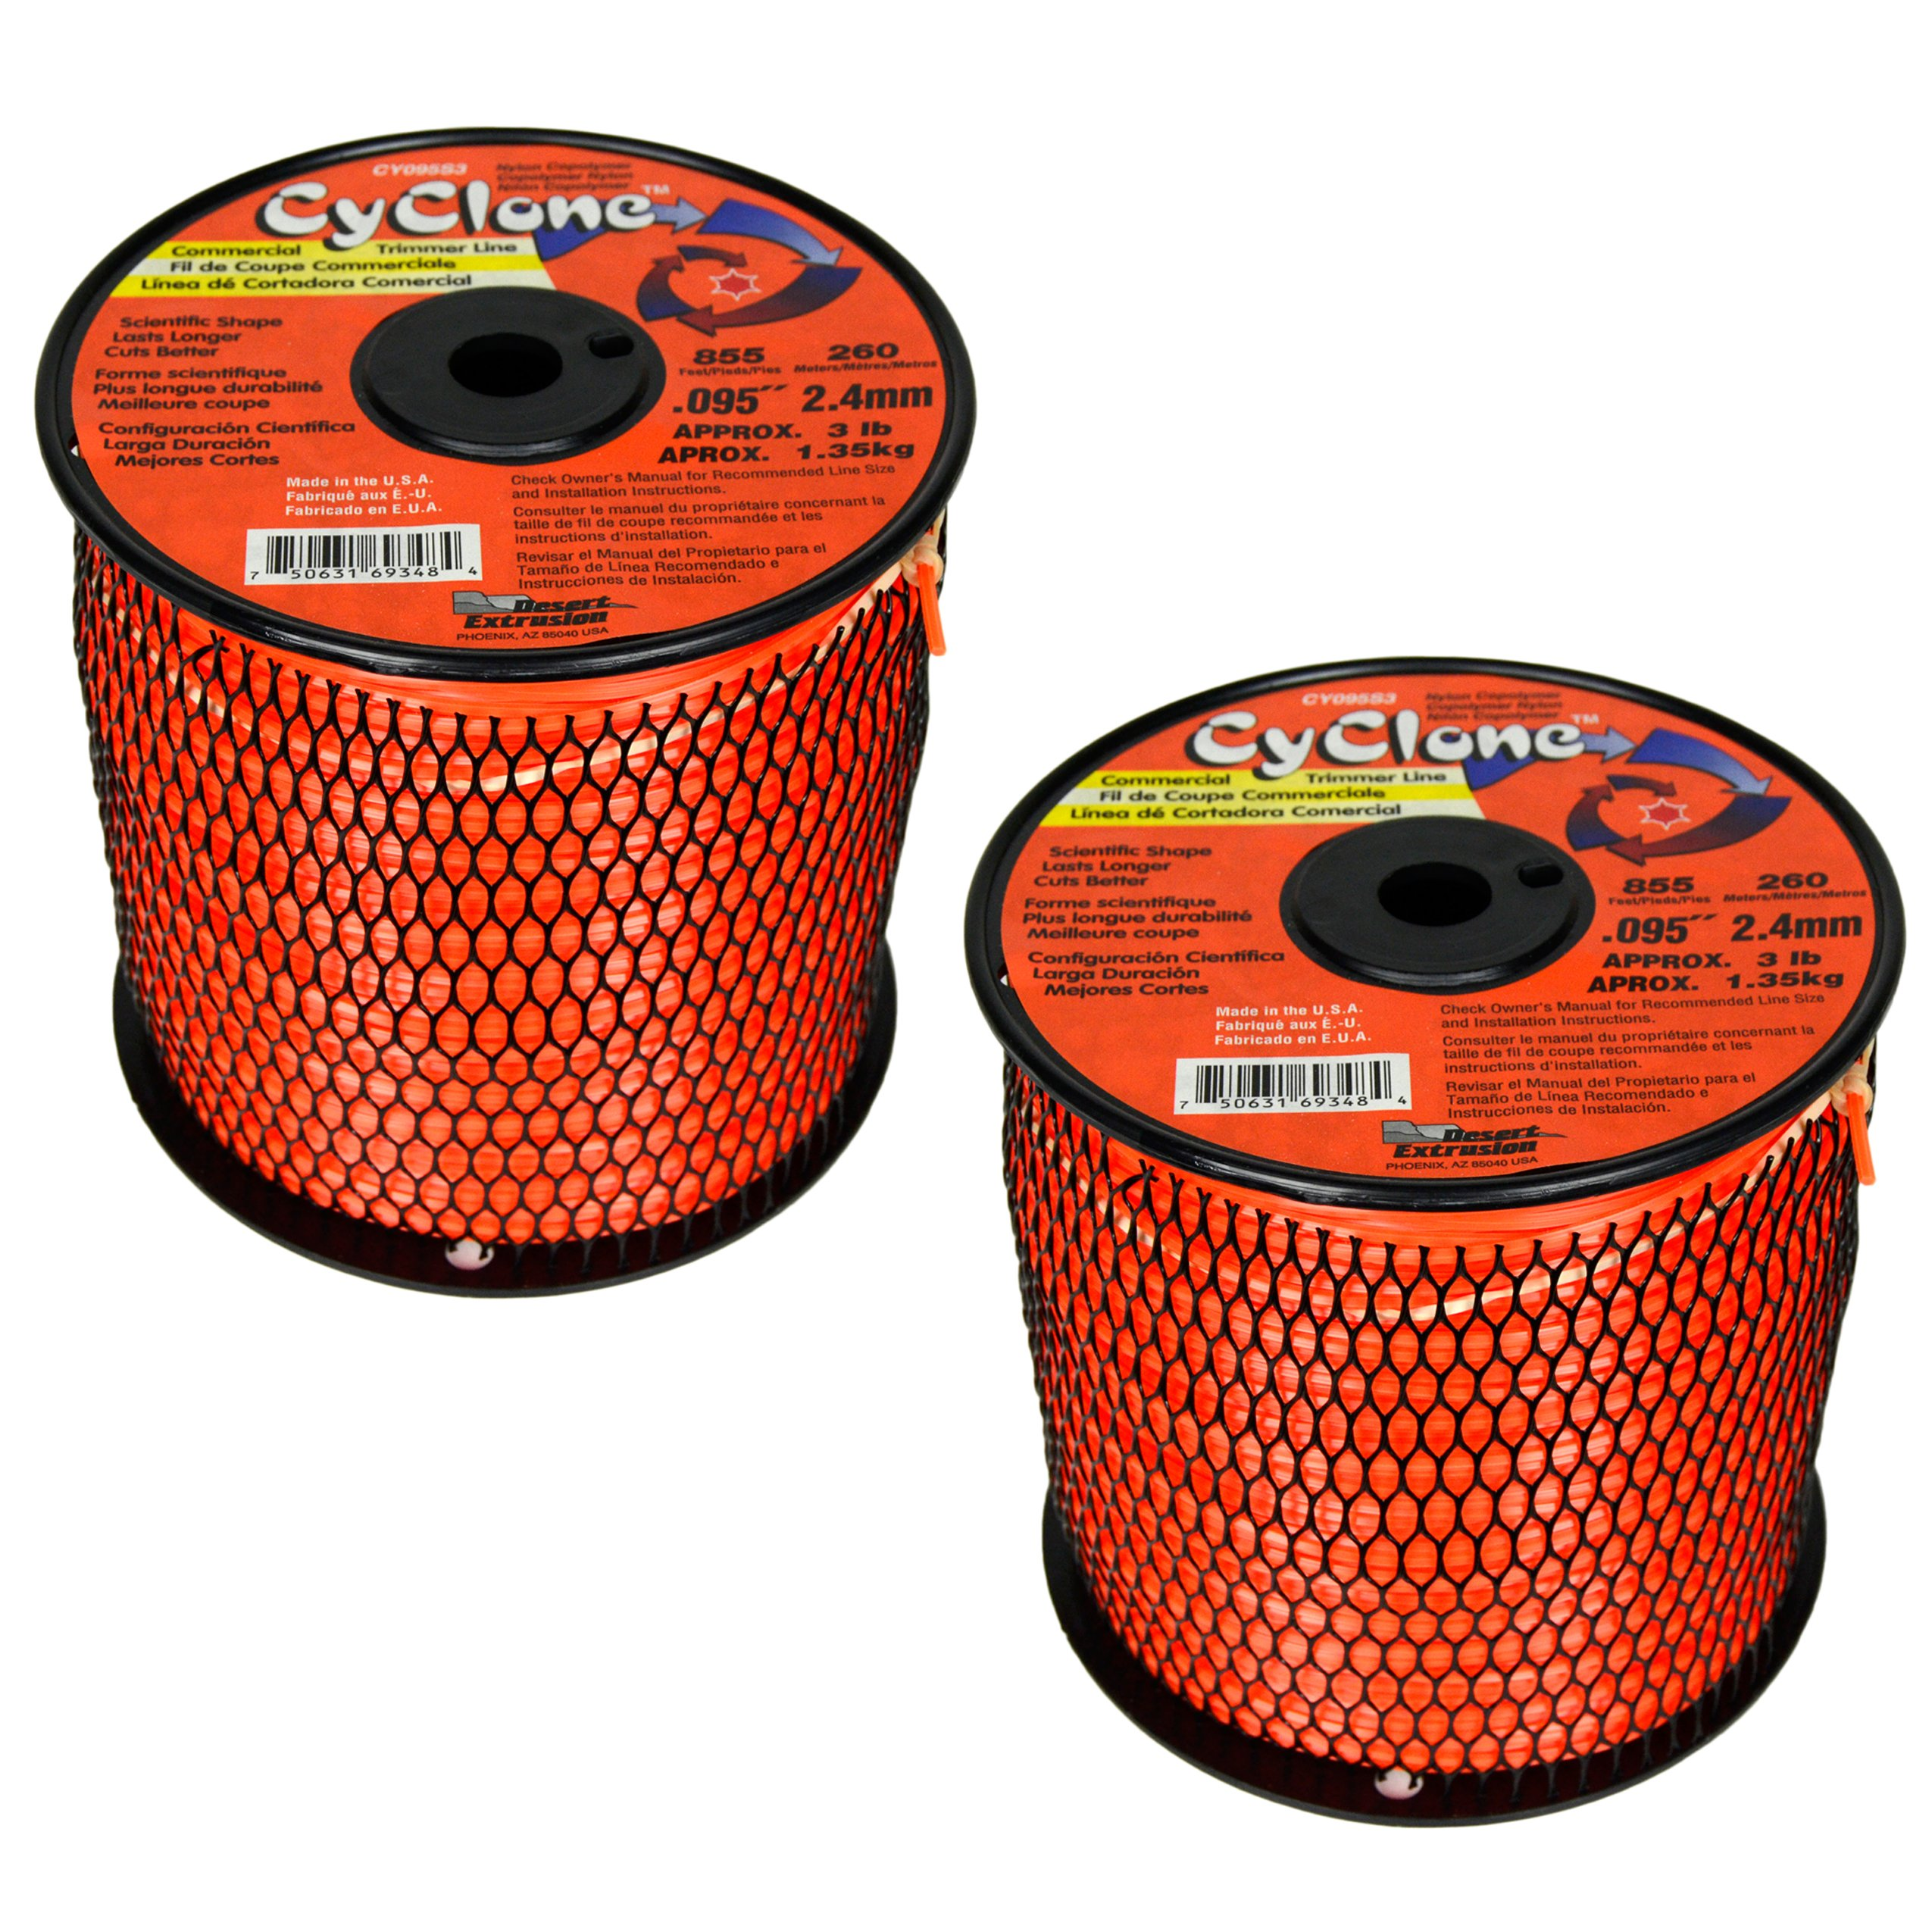 Cyclone .095-Inch 3-Pound Spool Commercial Grade 6-Blade Grass Trimmer Line, Orange CY095S3 (2 Pack)